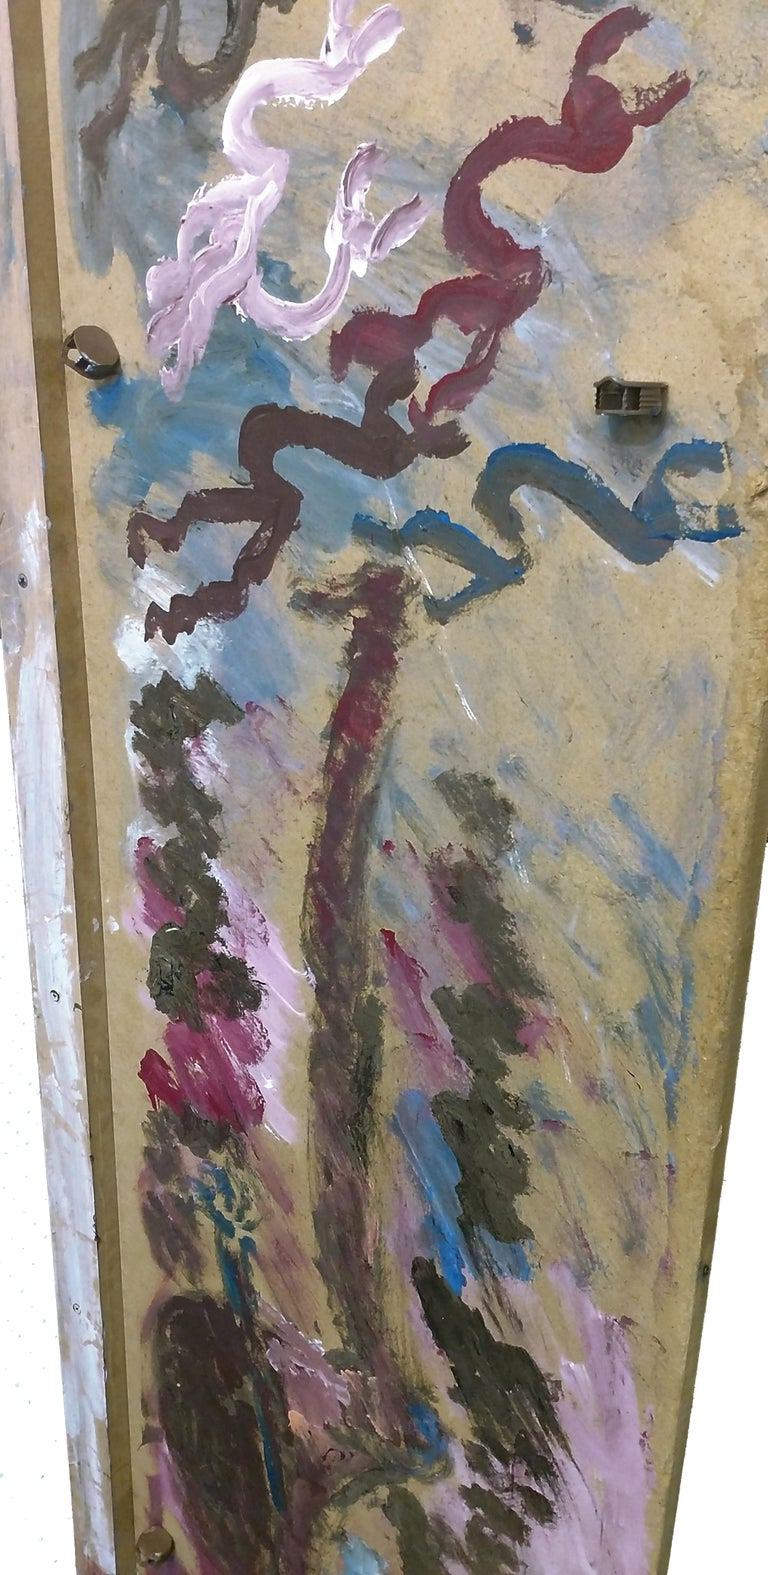 FERTILITY IV - Outsider Art Mixed Media Art by Purvis Young